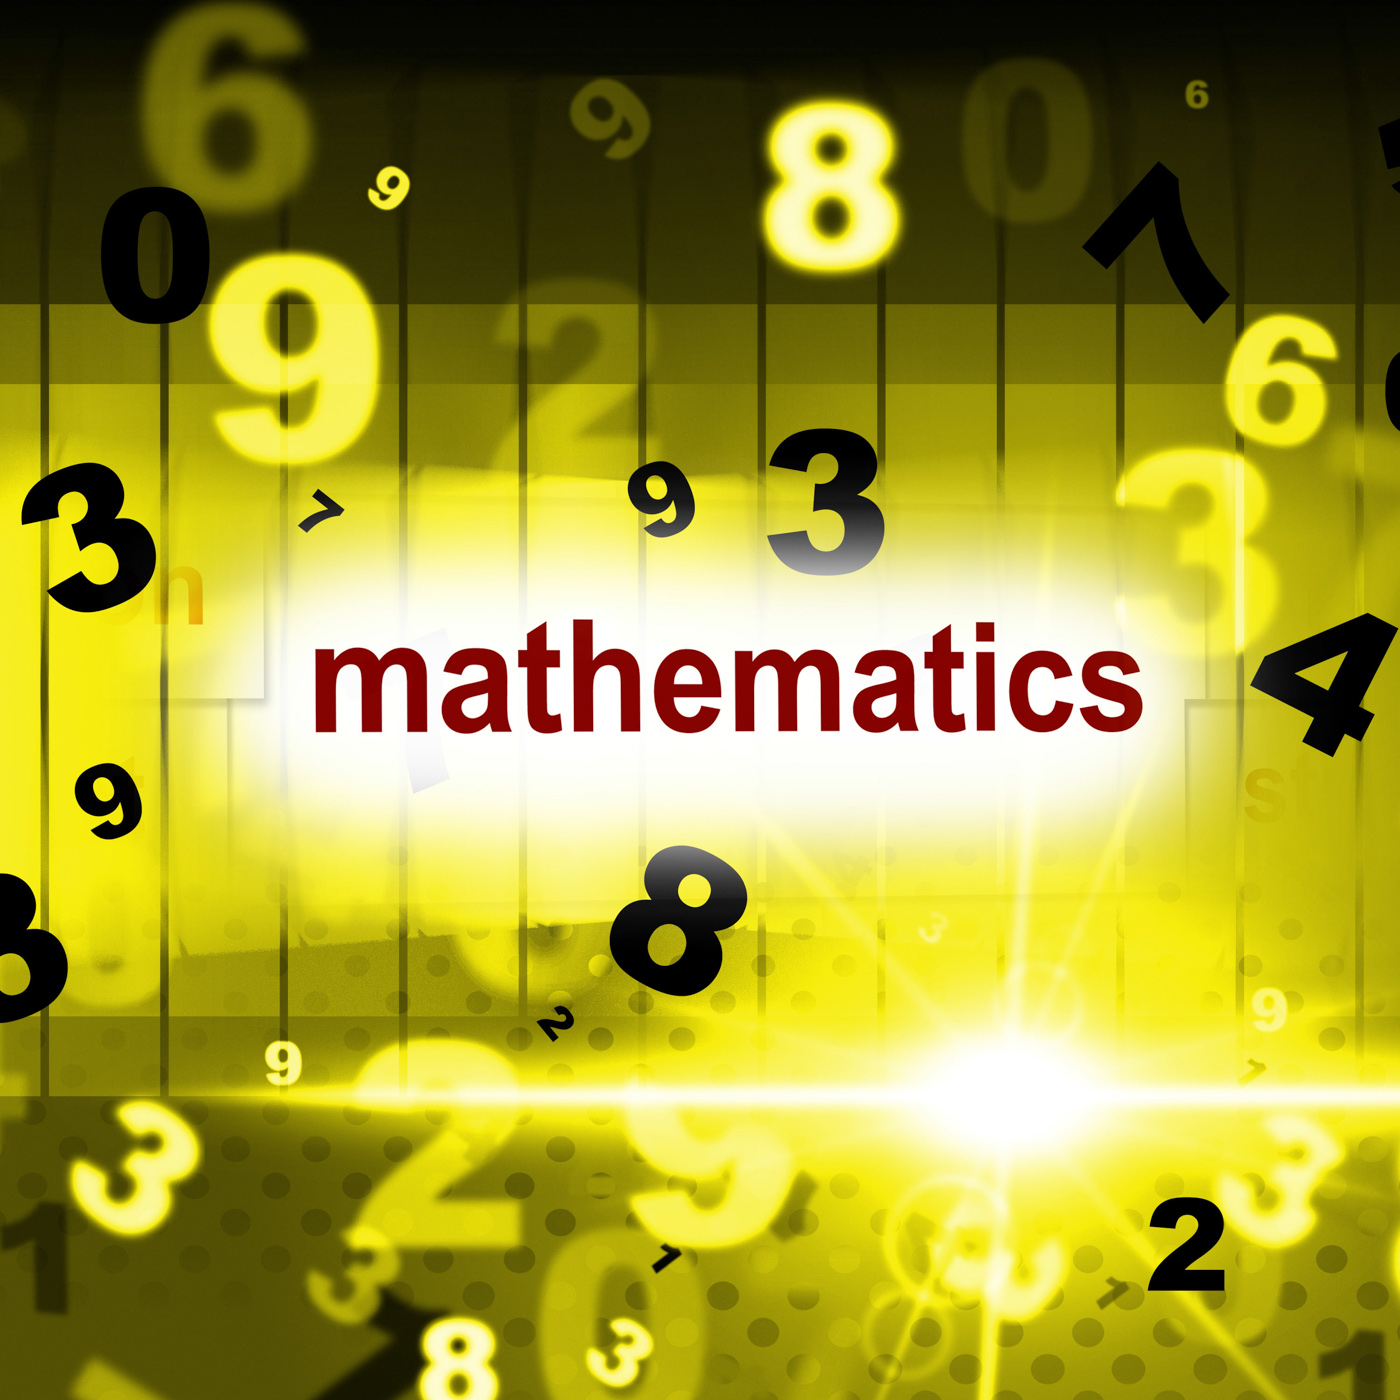 Mathematics counting shows one two three and maths photo